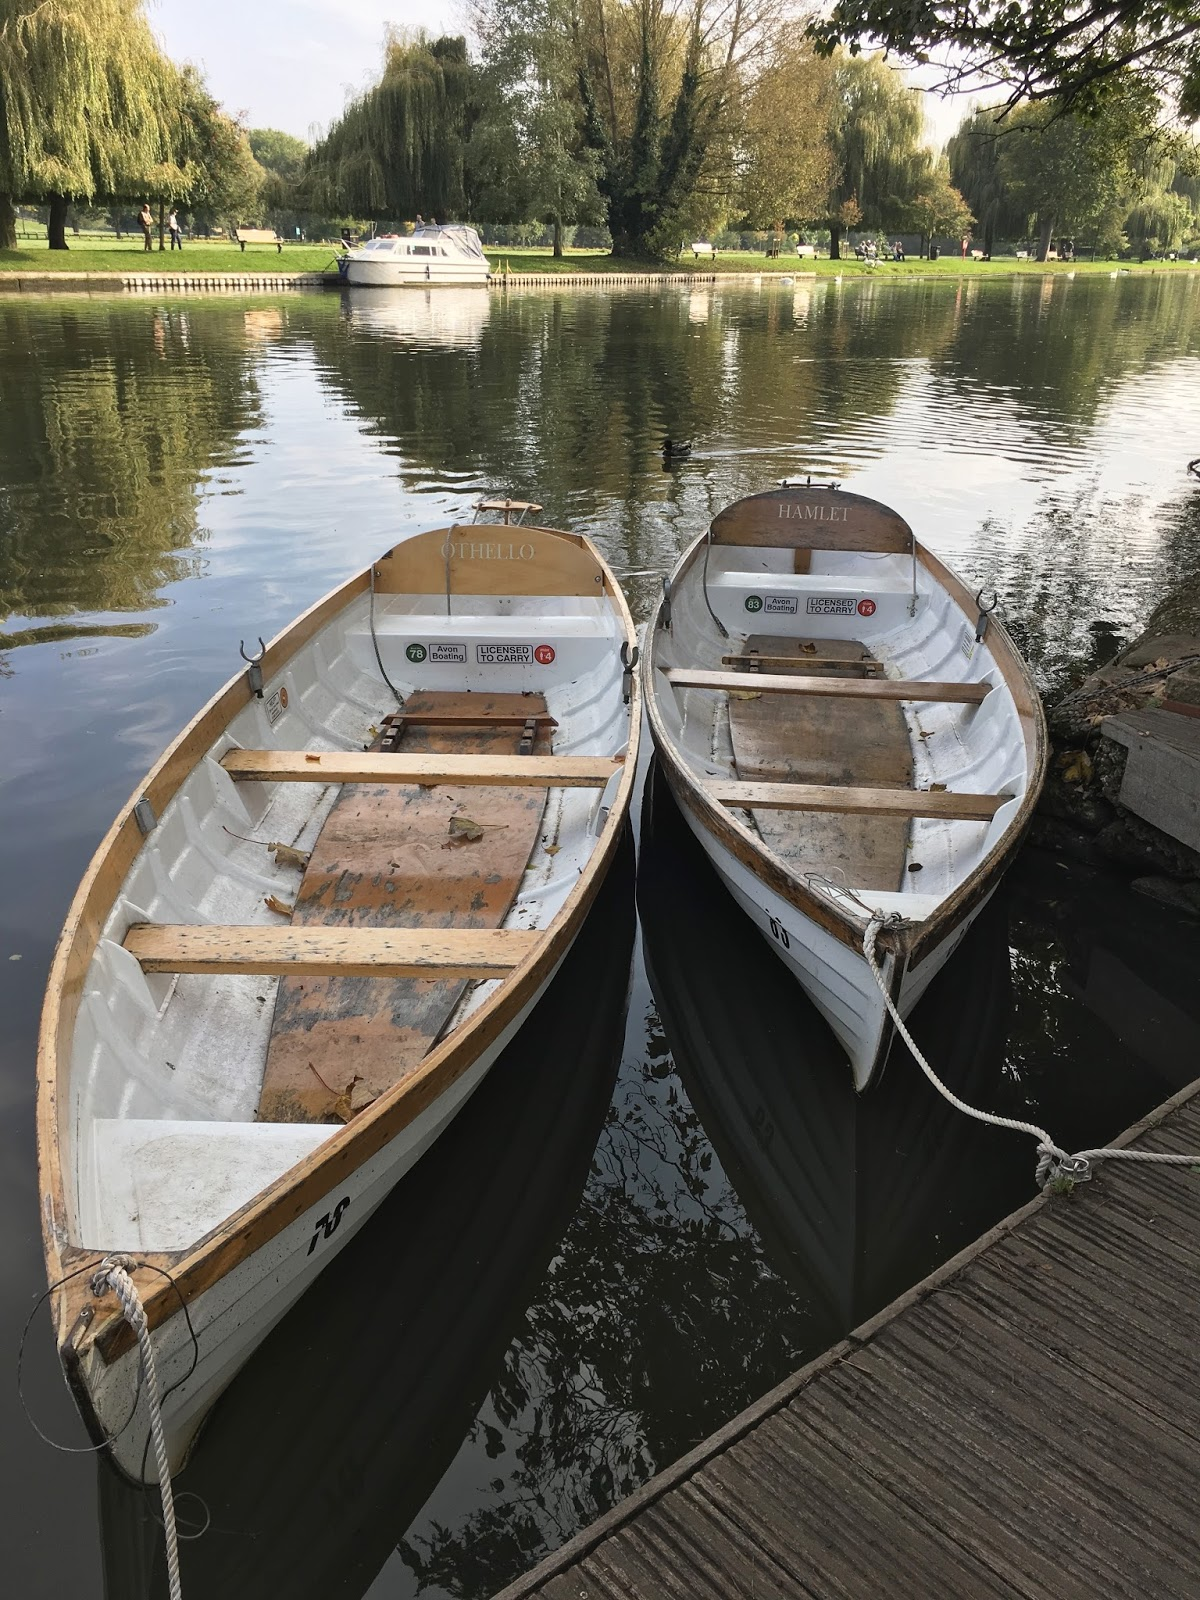 Rowing boats \ River Avon \ Stratford Upon Avon \ Travel \ Priceless Life of Mine \ Over 40 lifestyle blog